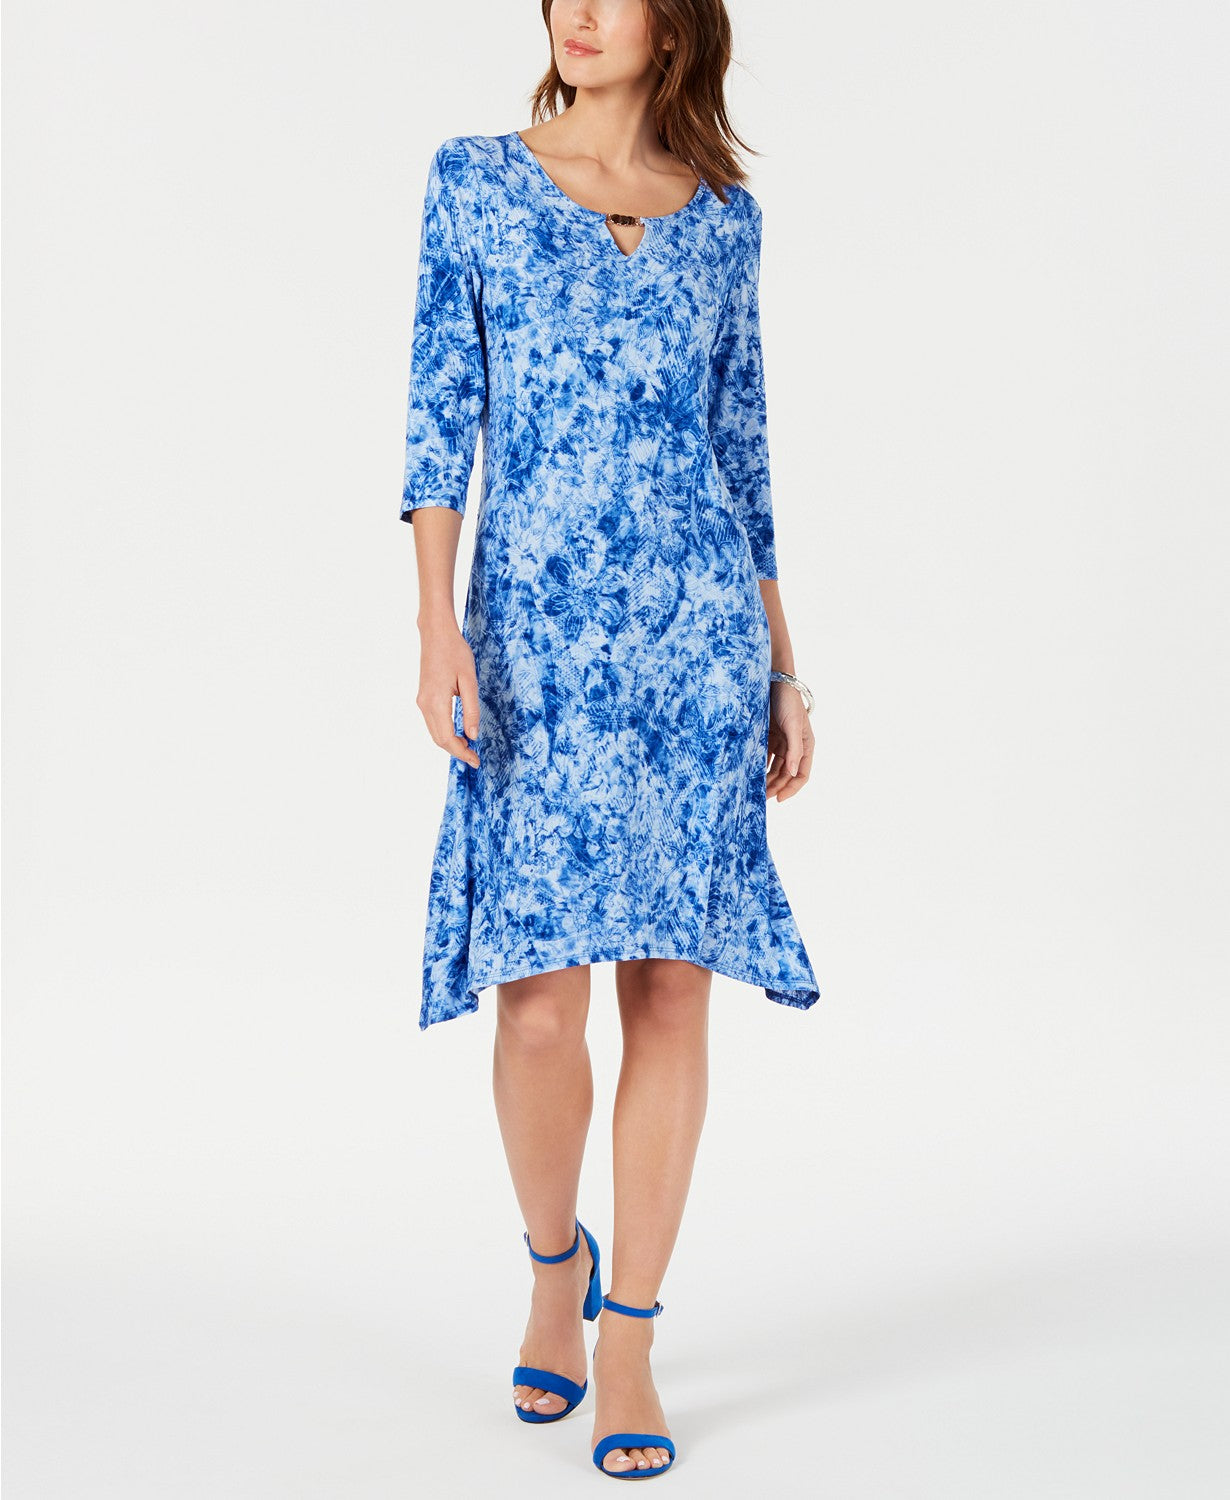 Ny Collection Petite Embellished Tie-Dyed Dress